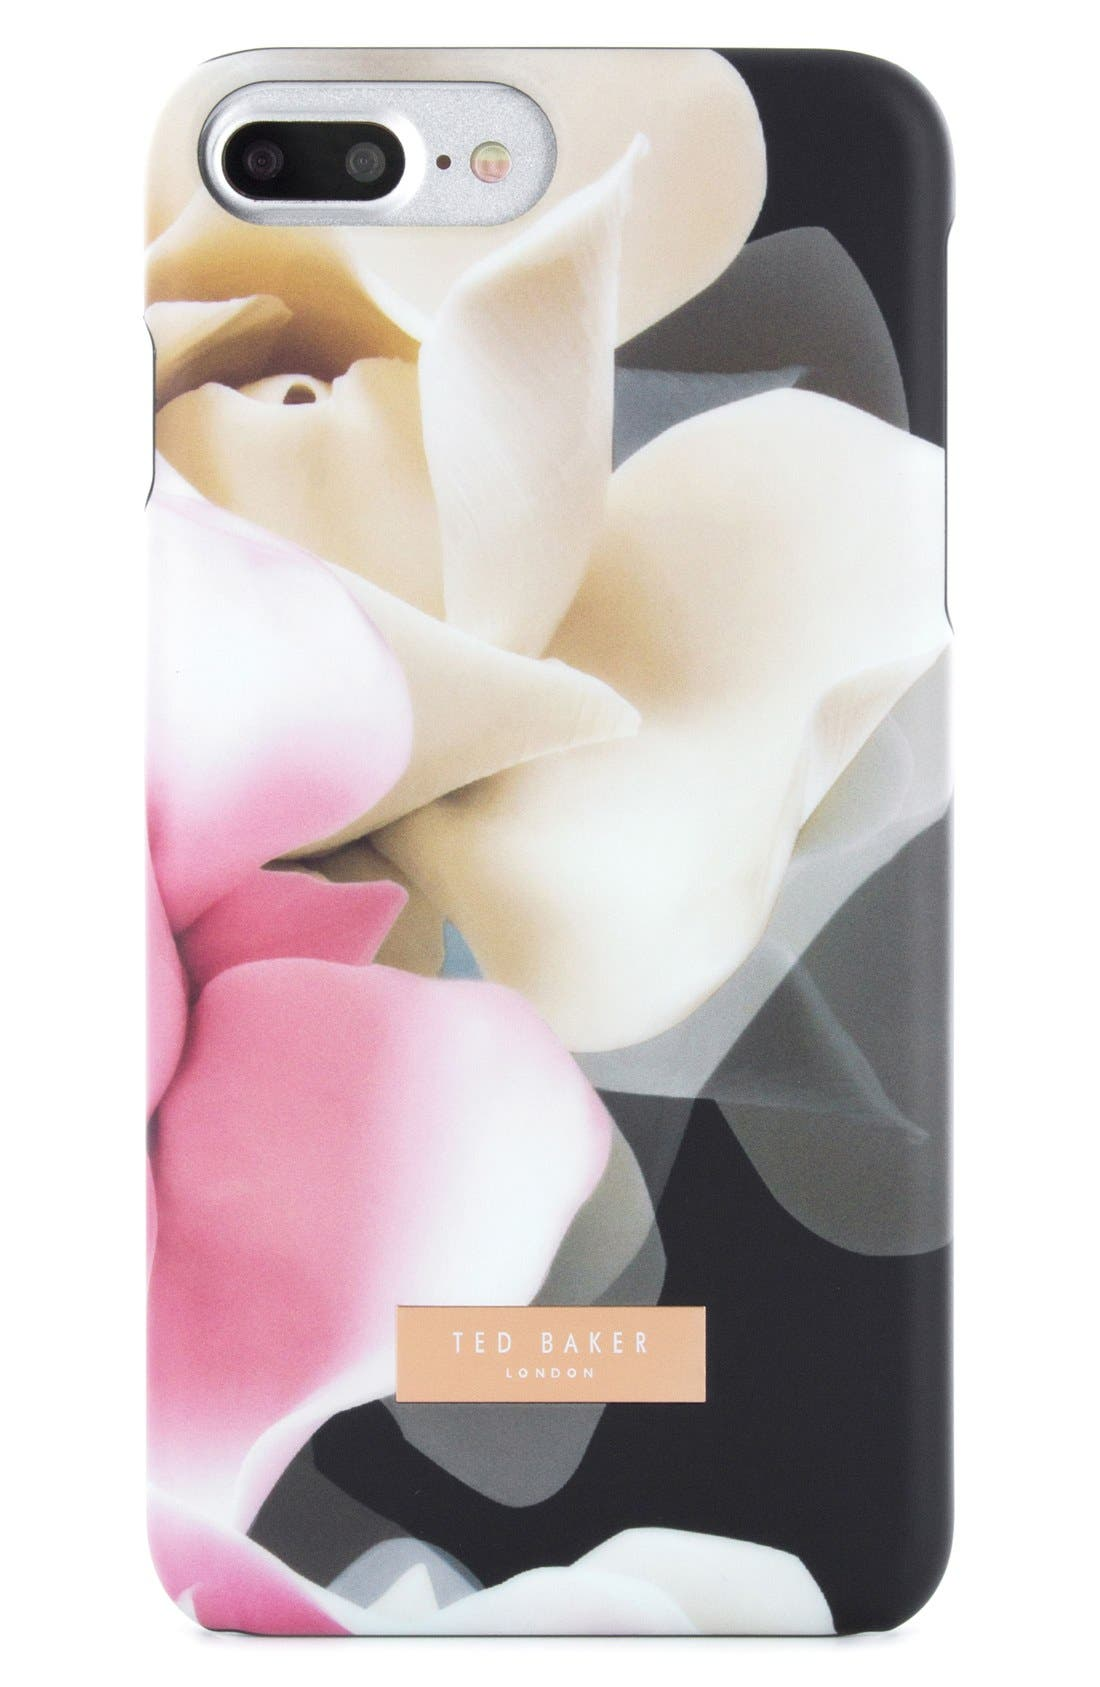 Alternate Image 1 Selected - Ted Baker London Annotei iPhone 6/6s/7/8 & 6/6s/7/8 Plus Case